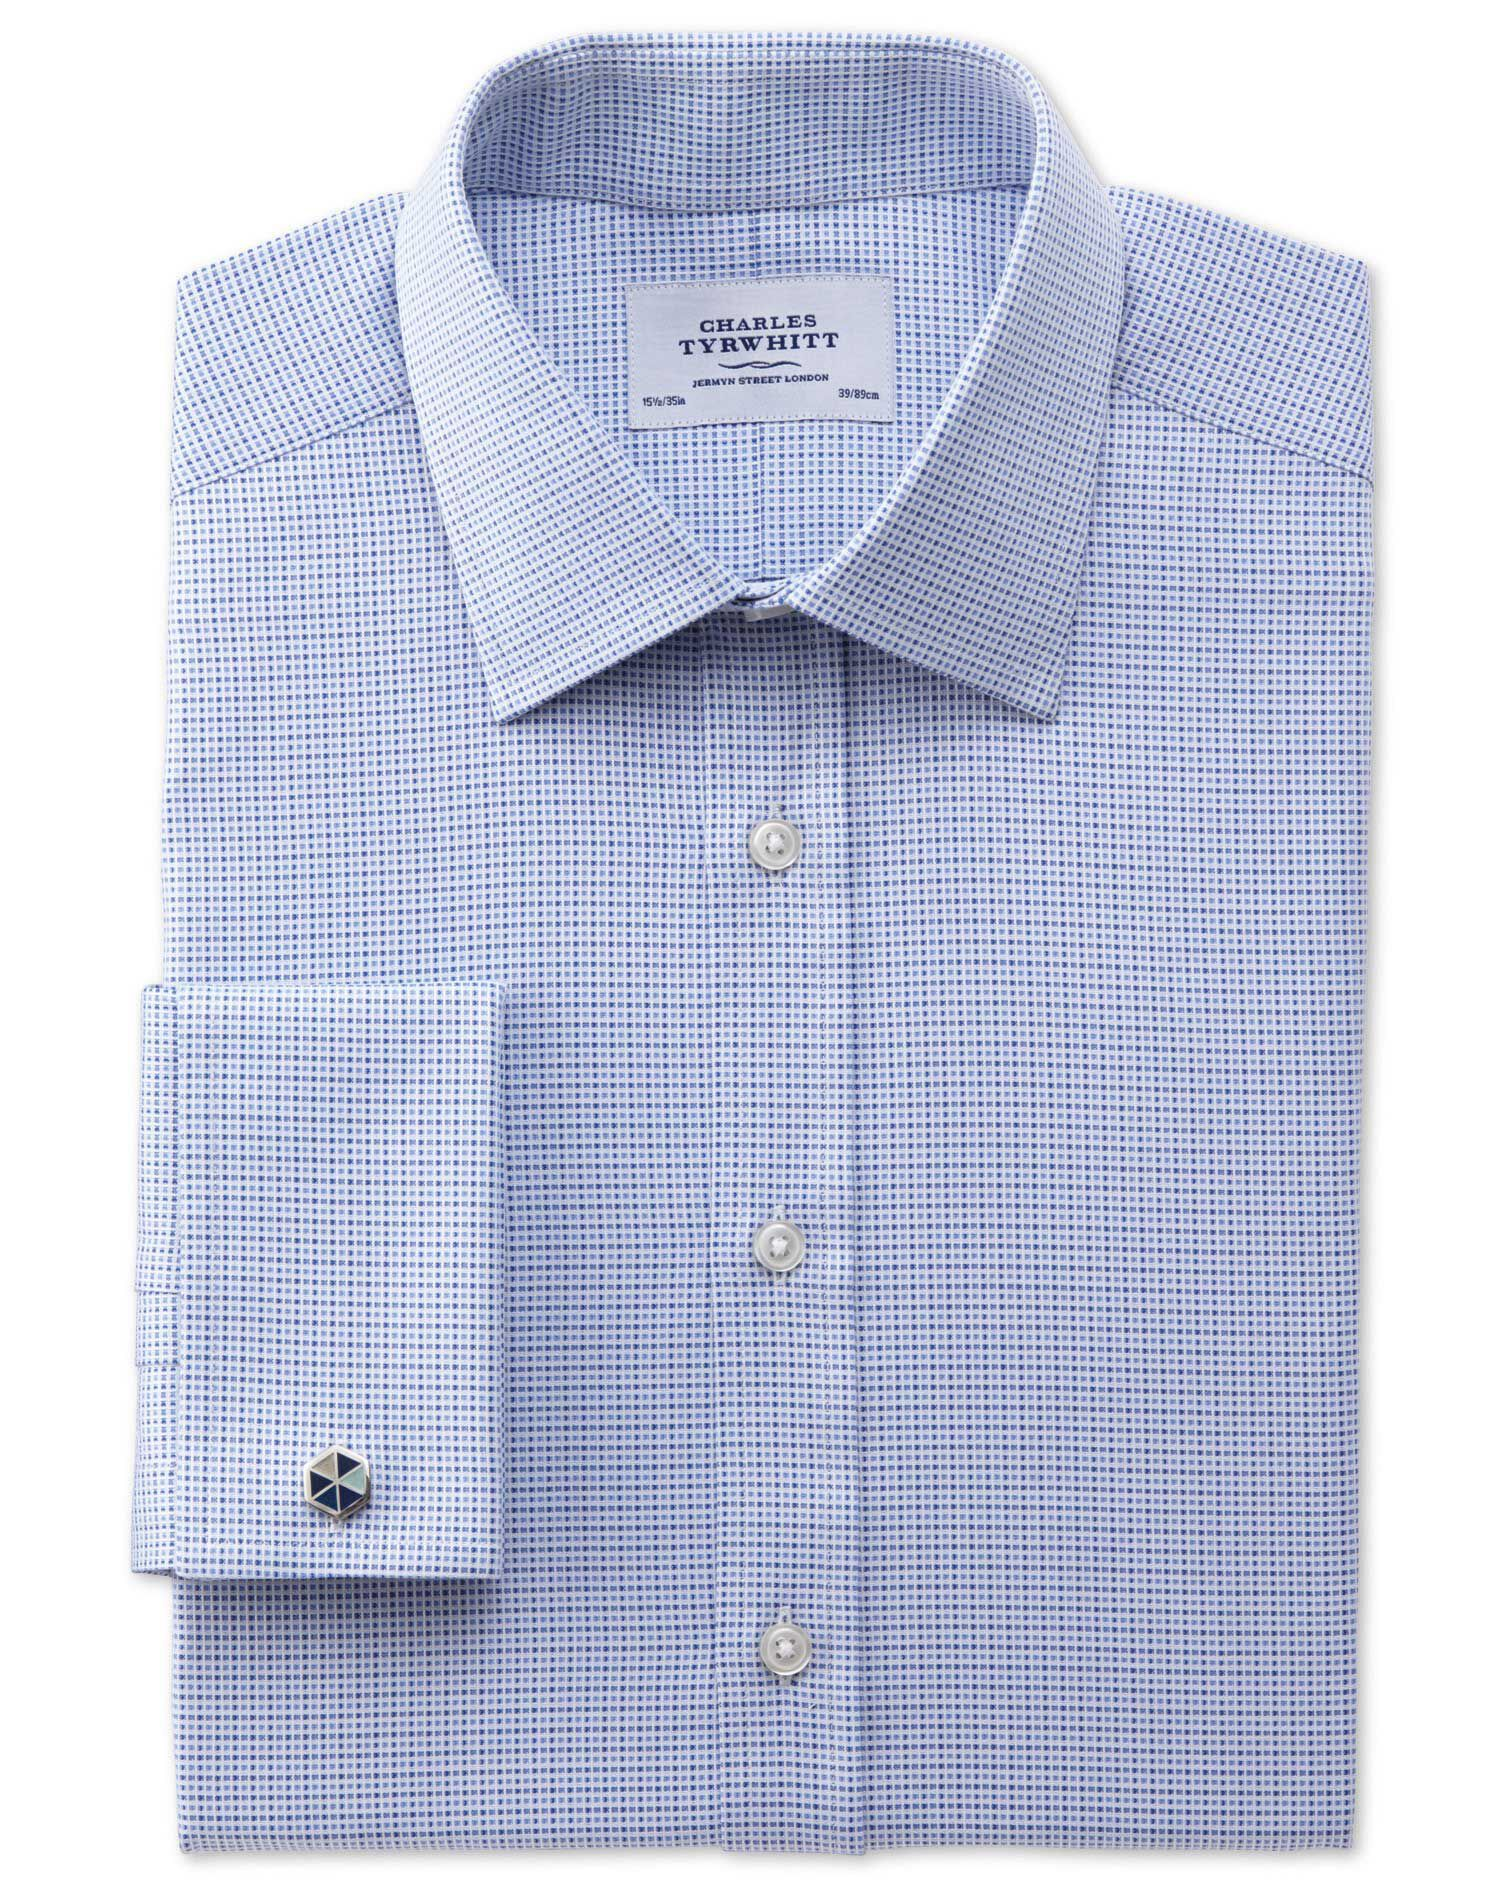 Classic Fit Egyptian Cotton Textured Blue Formal Shirt Double Cuff Size 16.5/38 by Charles Tyrwhitt